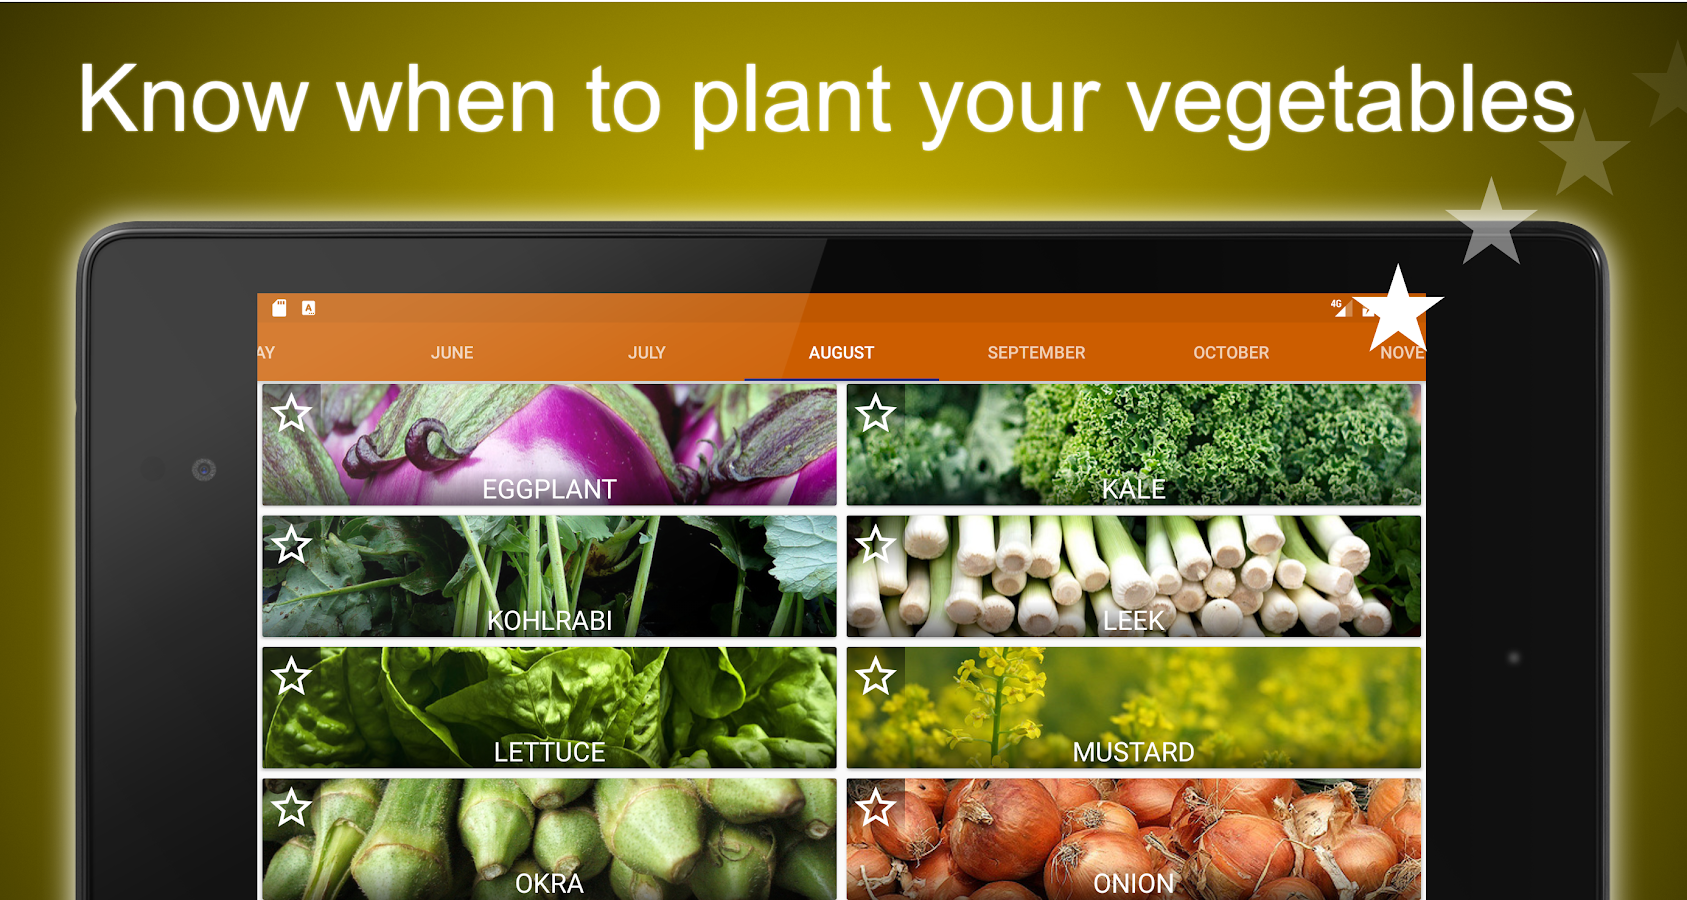 Planting Calendar Vegetables Android Apps on Google Play